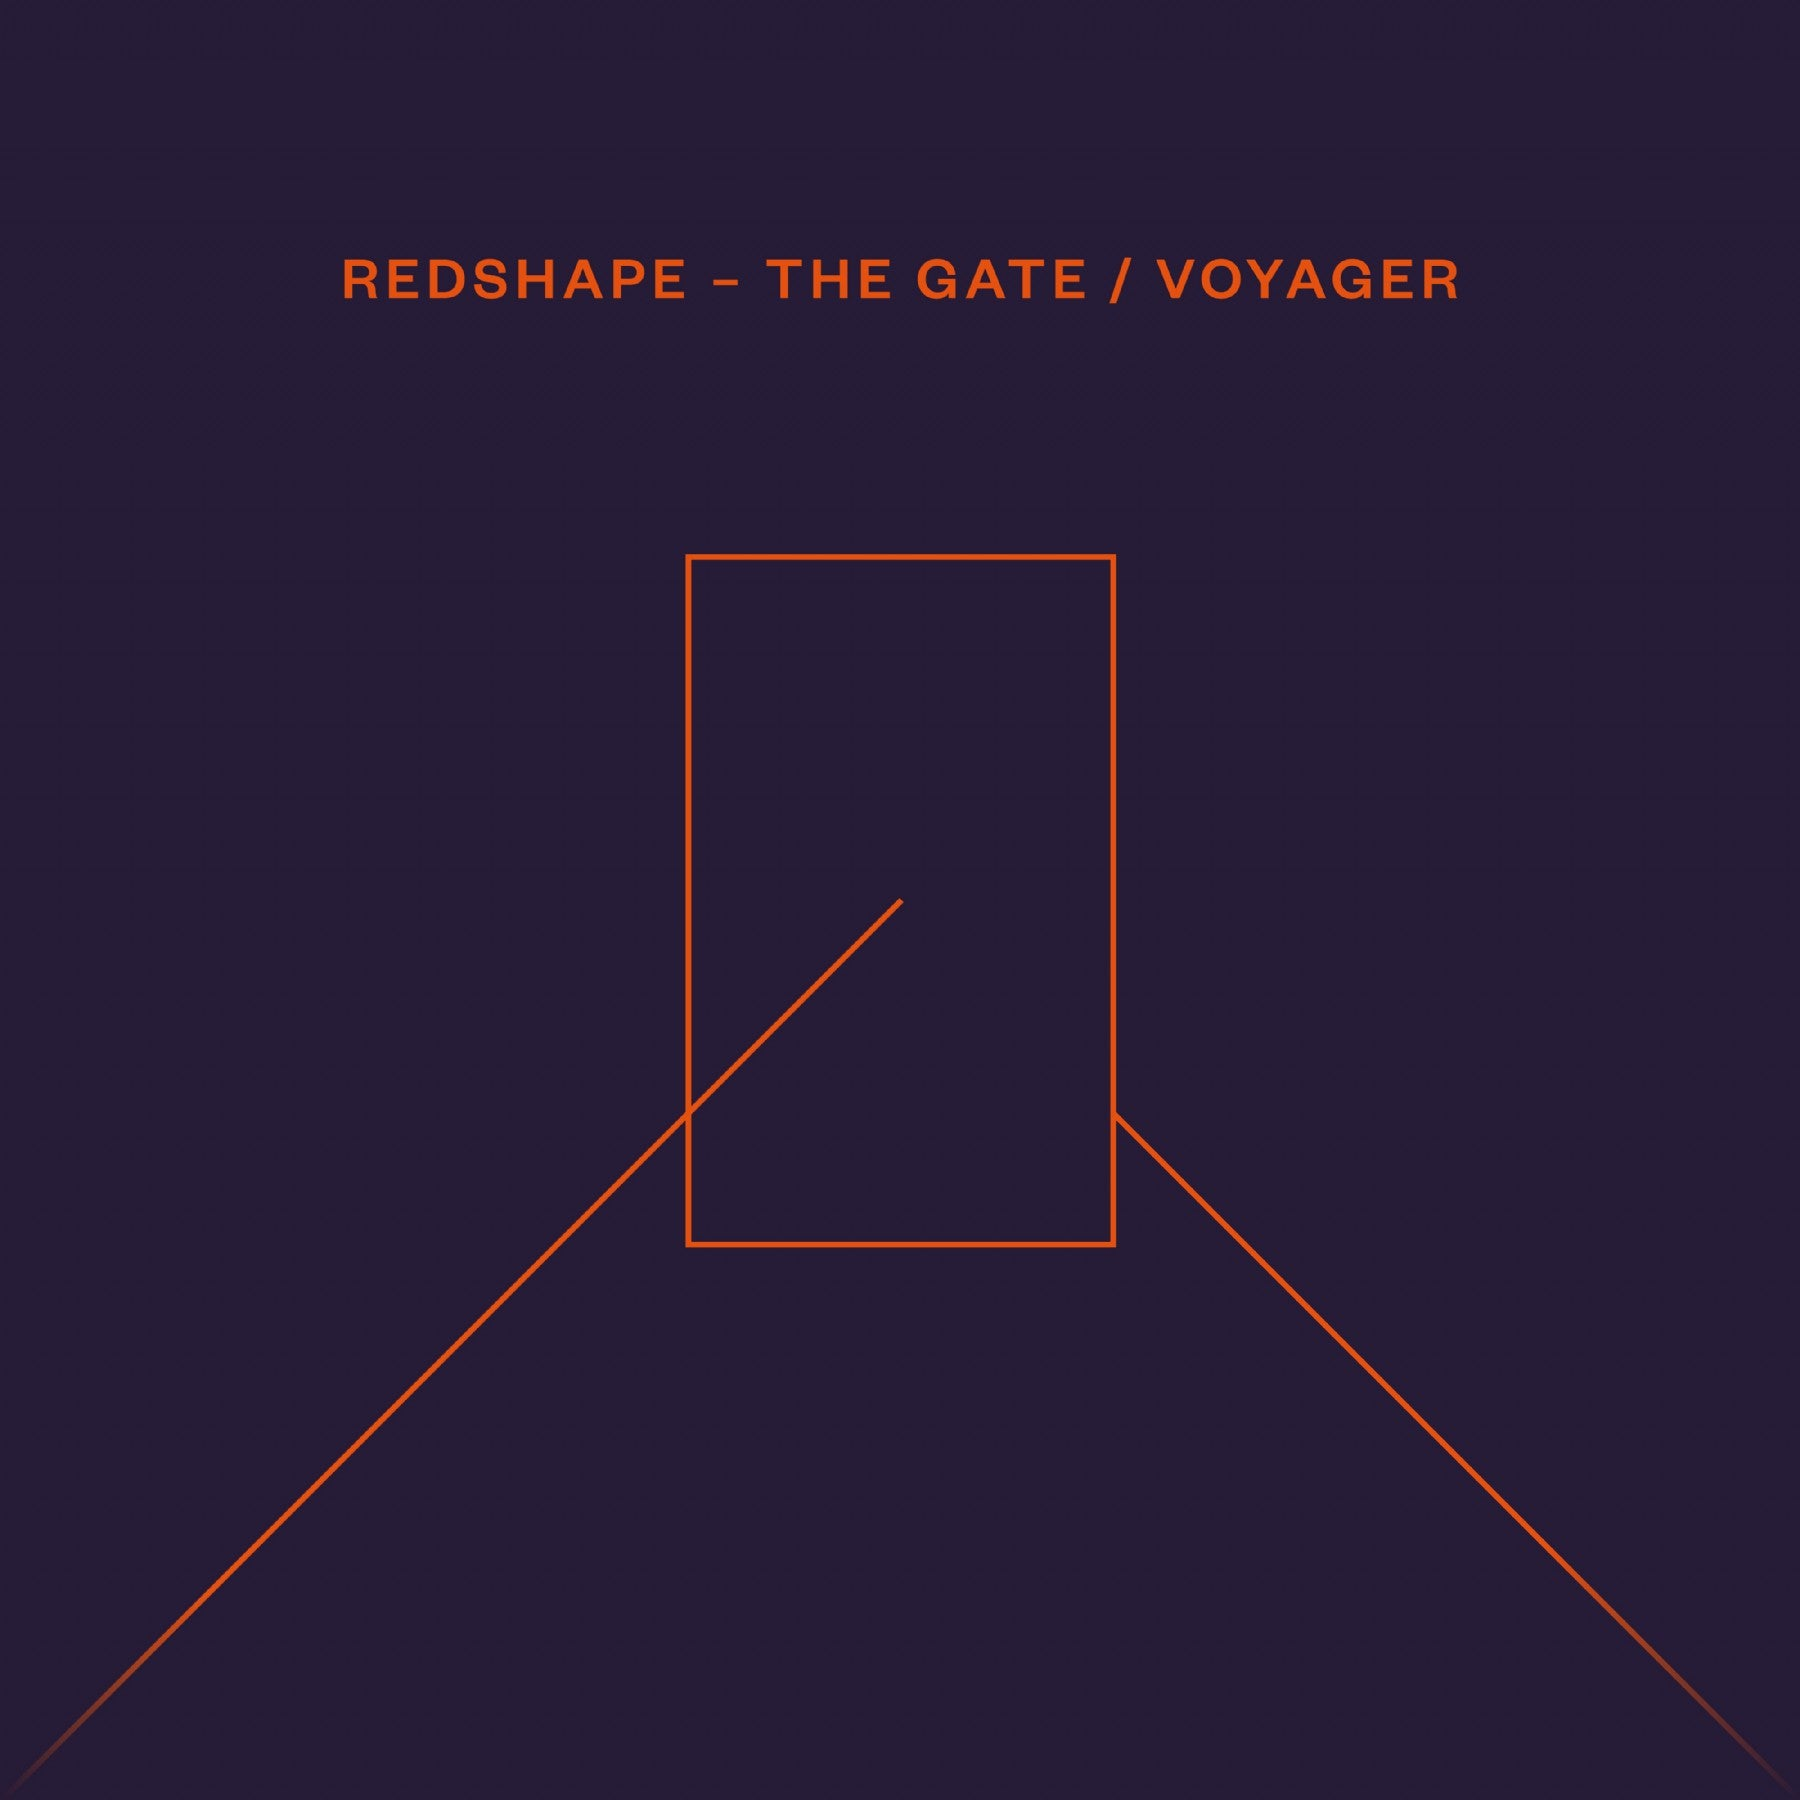 Redshape - The Gate / Voyager